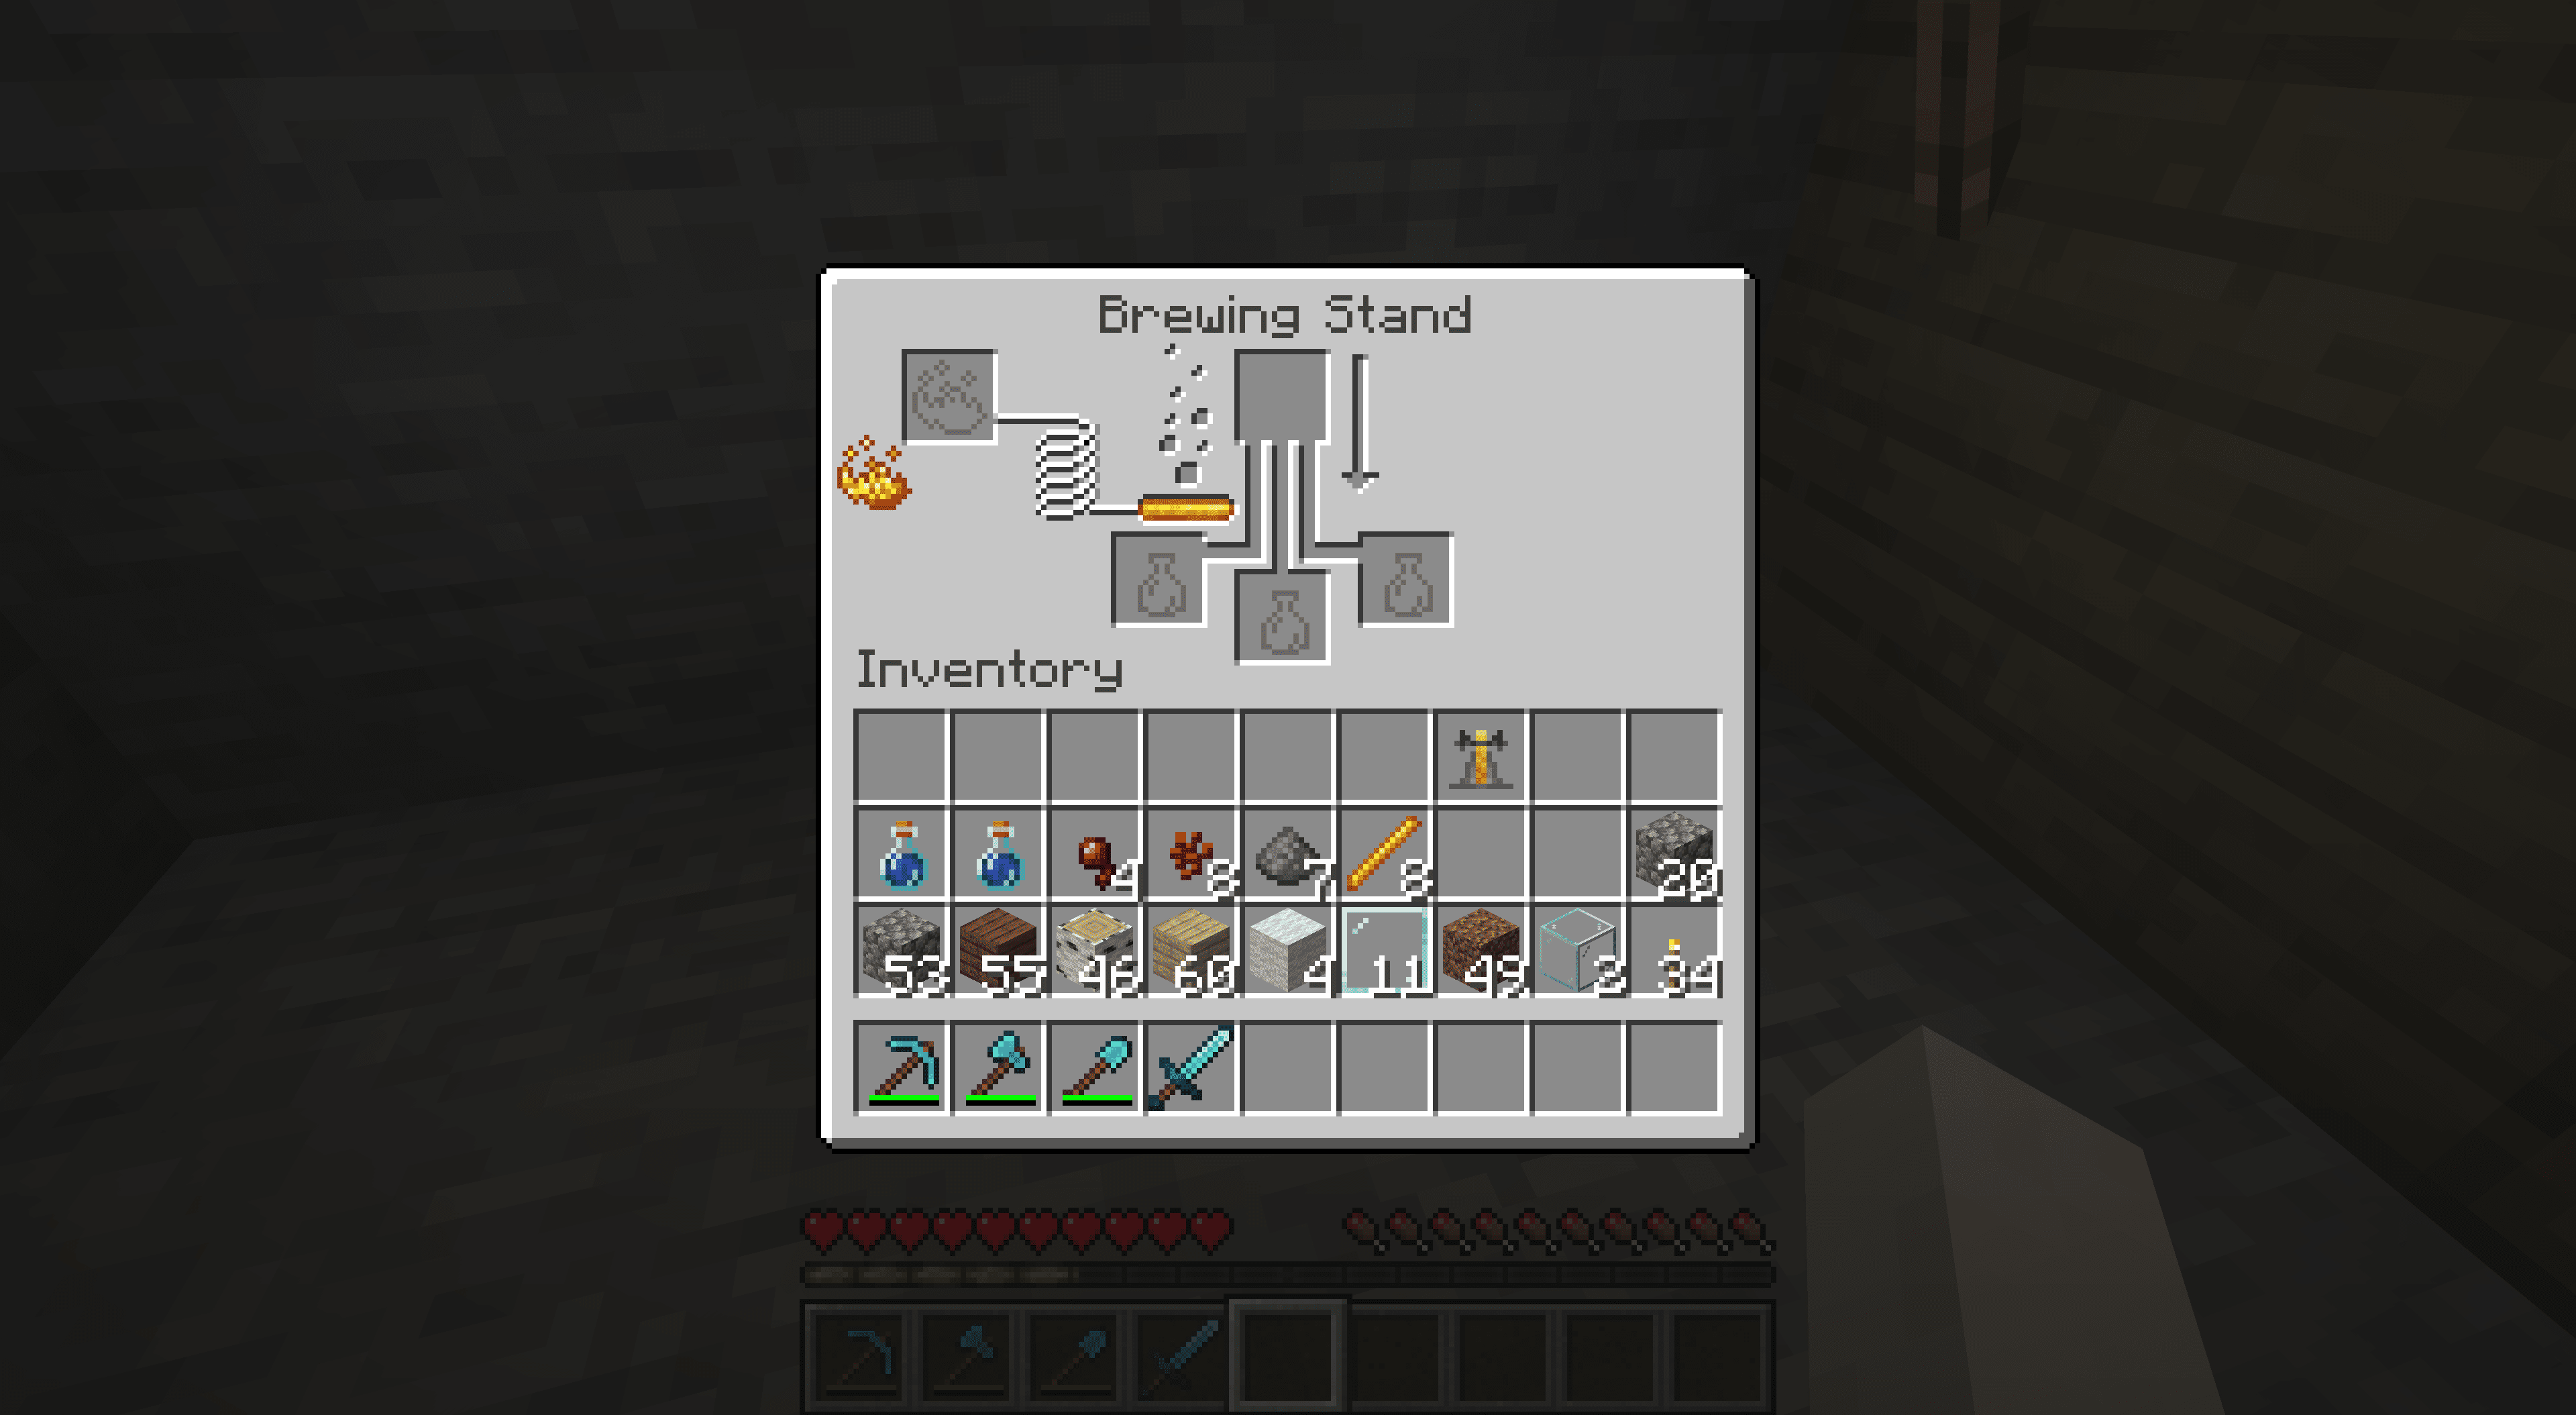 Placing blaze powder in a brewing stand in Minecraft.